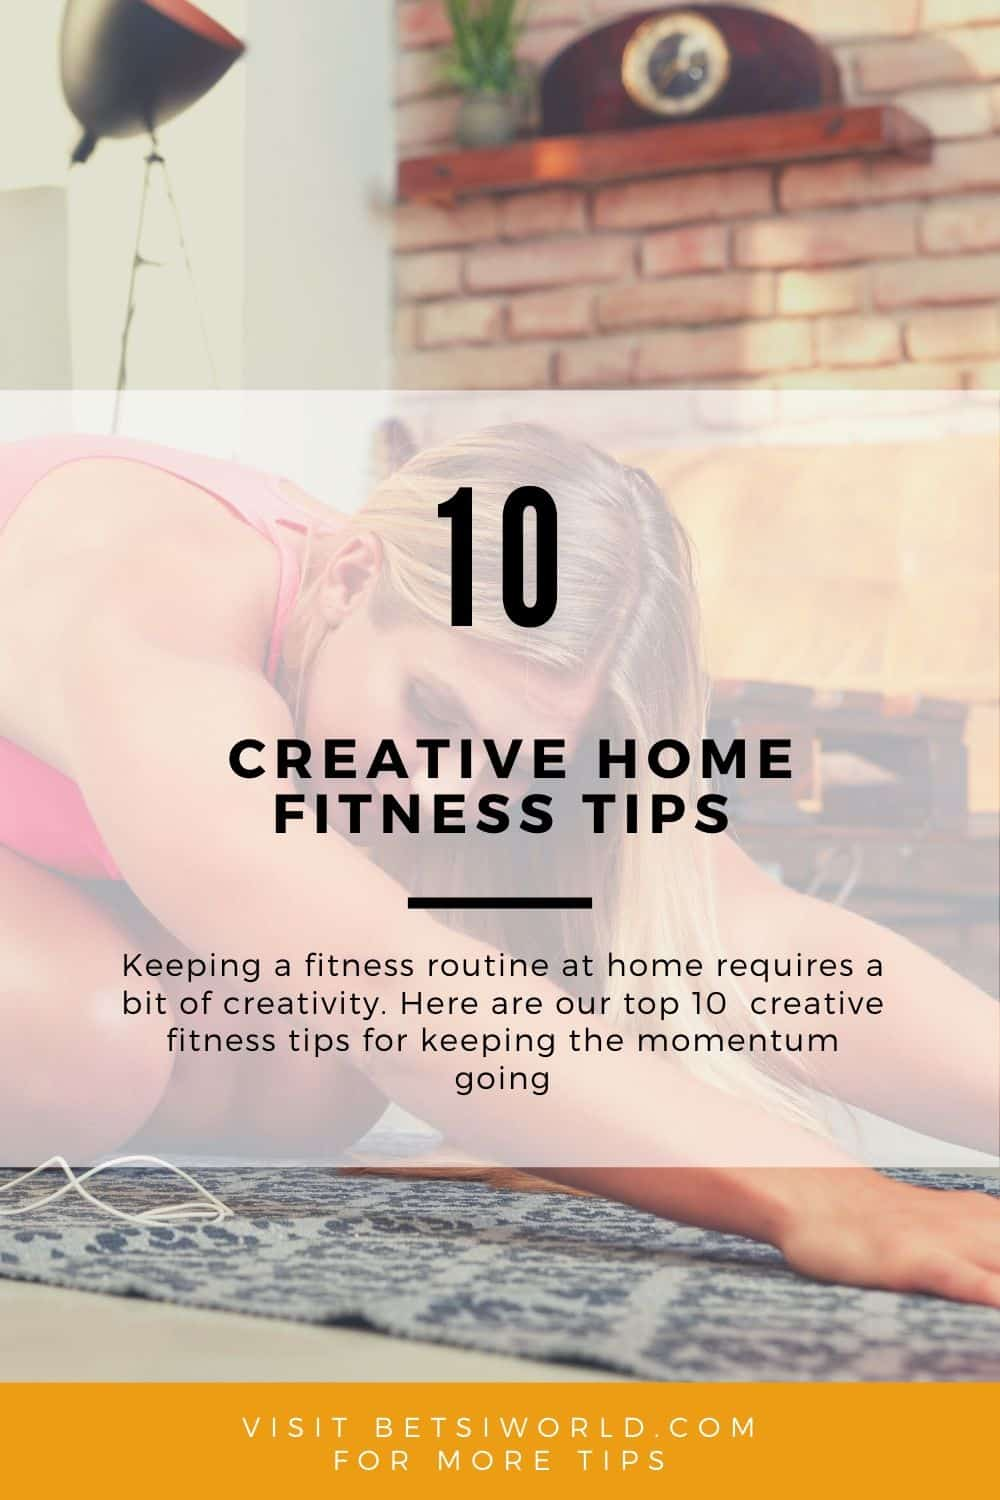 Good mental health promotes good physical health, and we crave routines. Keep on your toes with these 10 creative home fitness tips that use our everyday activities as a form of #fitness at home.